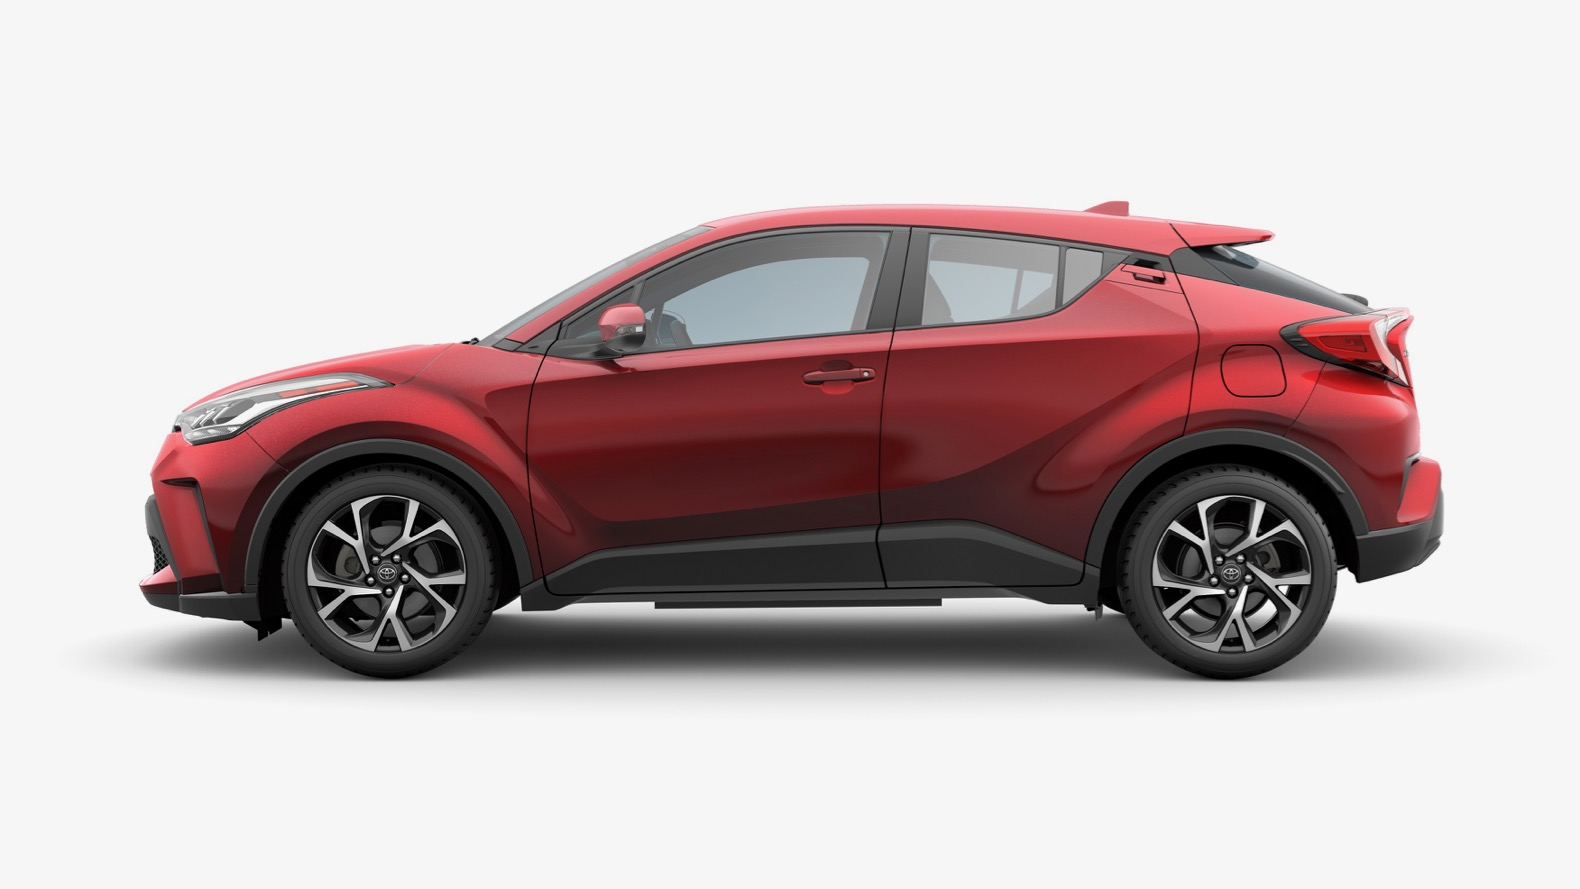 2020 Toyota C-HR gets a facelift | The Torque Report